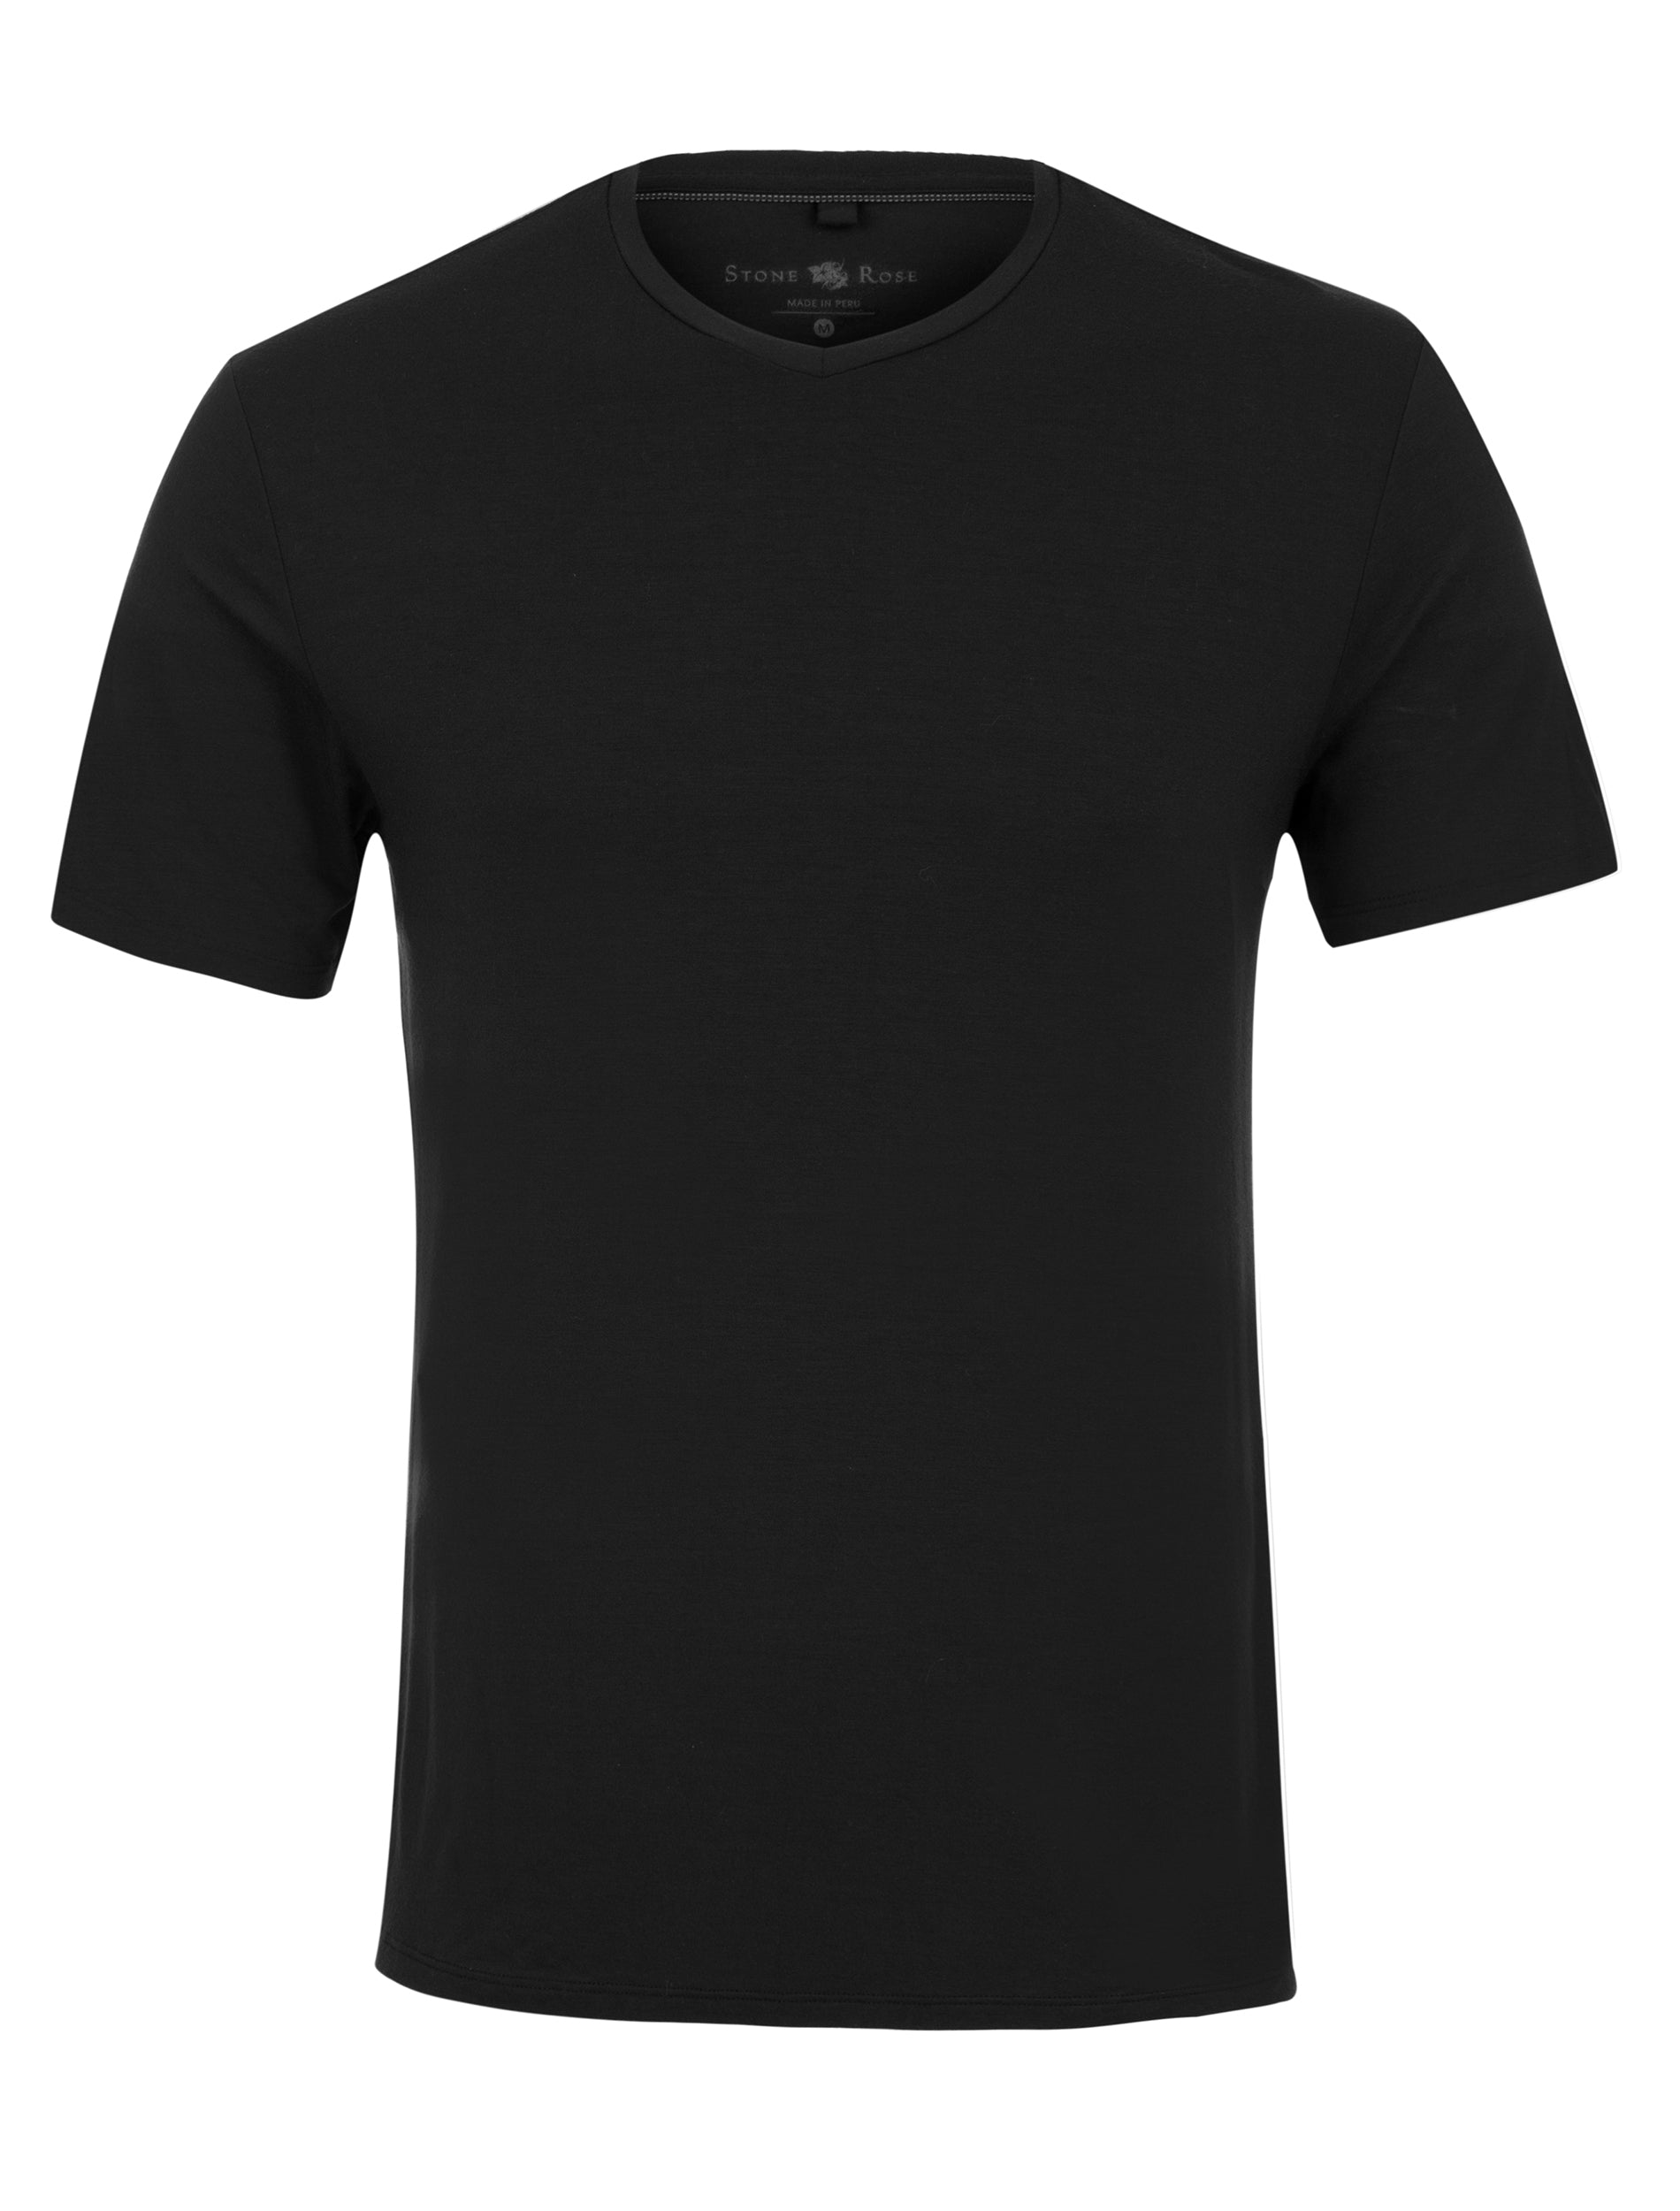 Black V-Neck Modal T-Shirt-Stone Rose